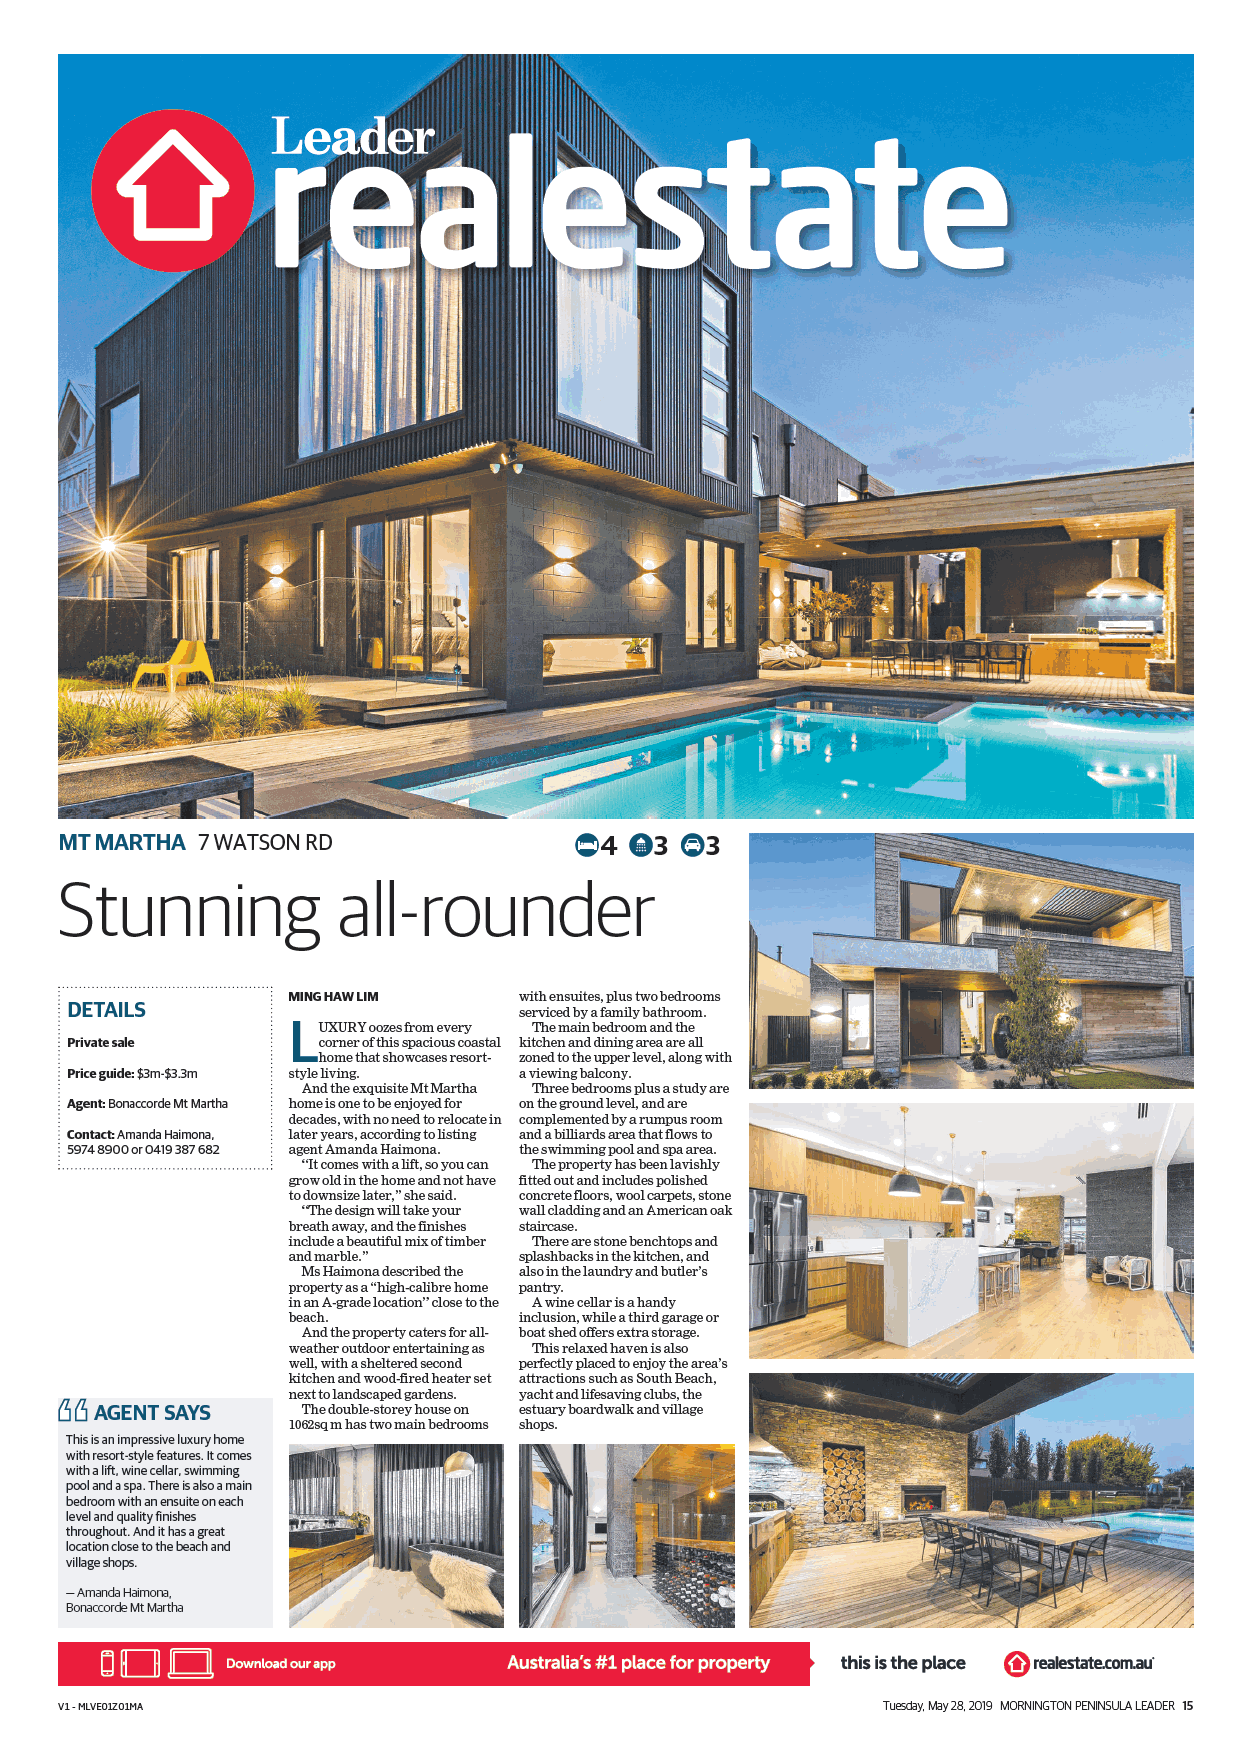 MORNINGTON PENINSULA LEADER - FRONT COVER OF REALESTATE.COM